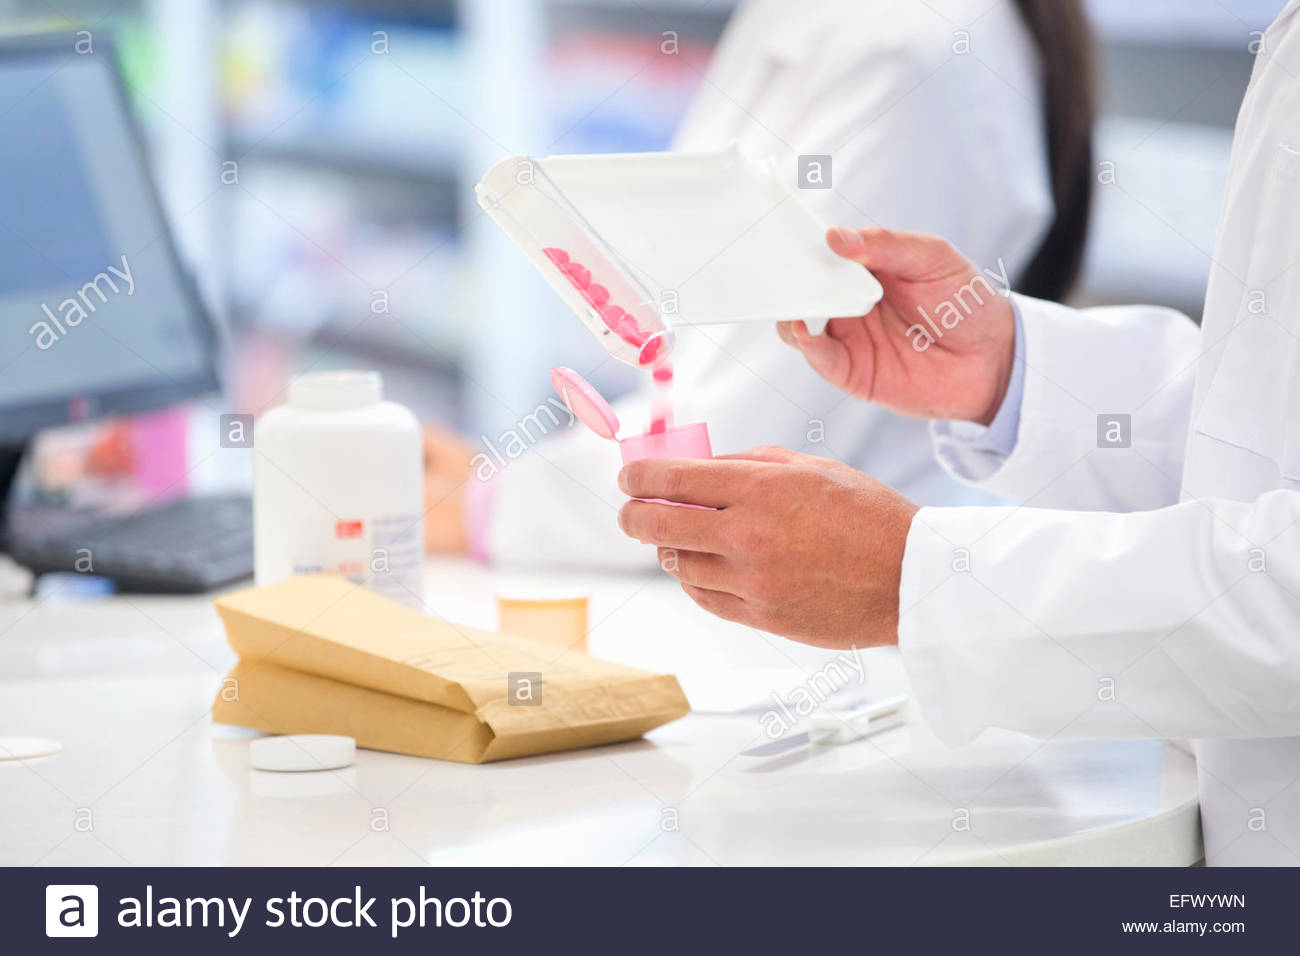 Close up of pharmacists hands counting and dispensing medication - Stock Image